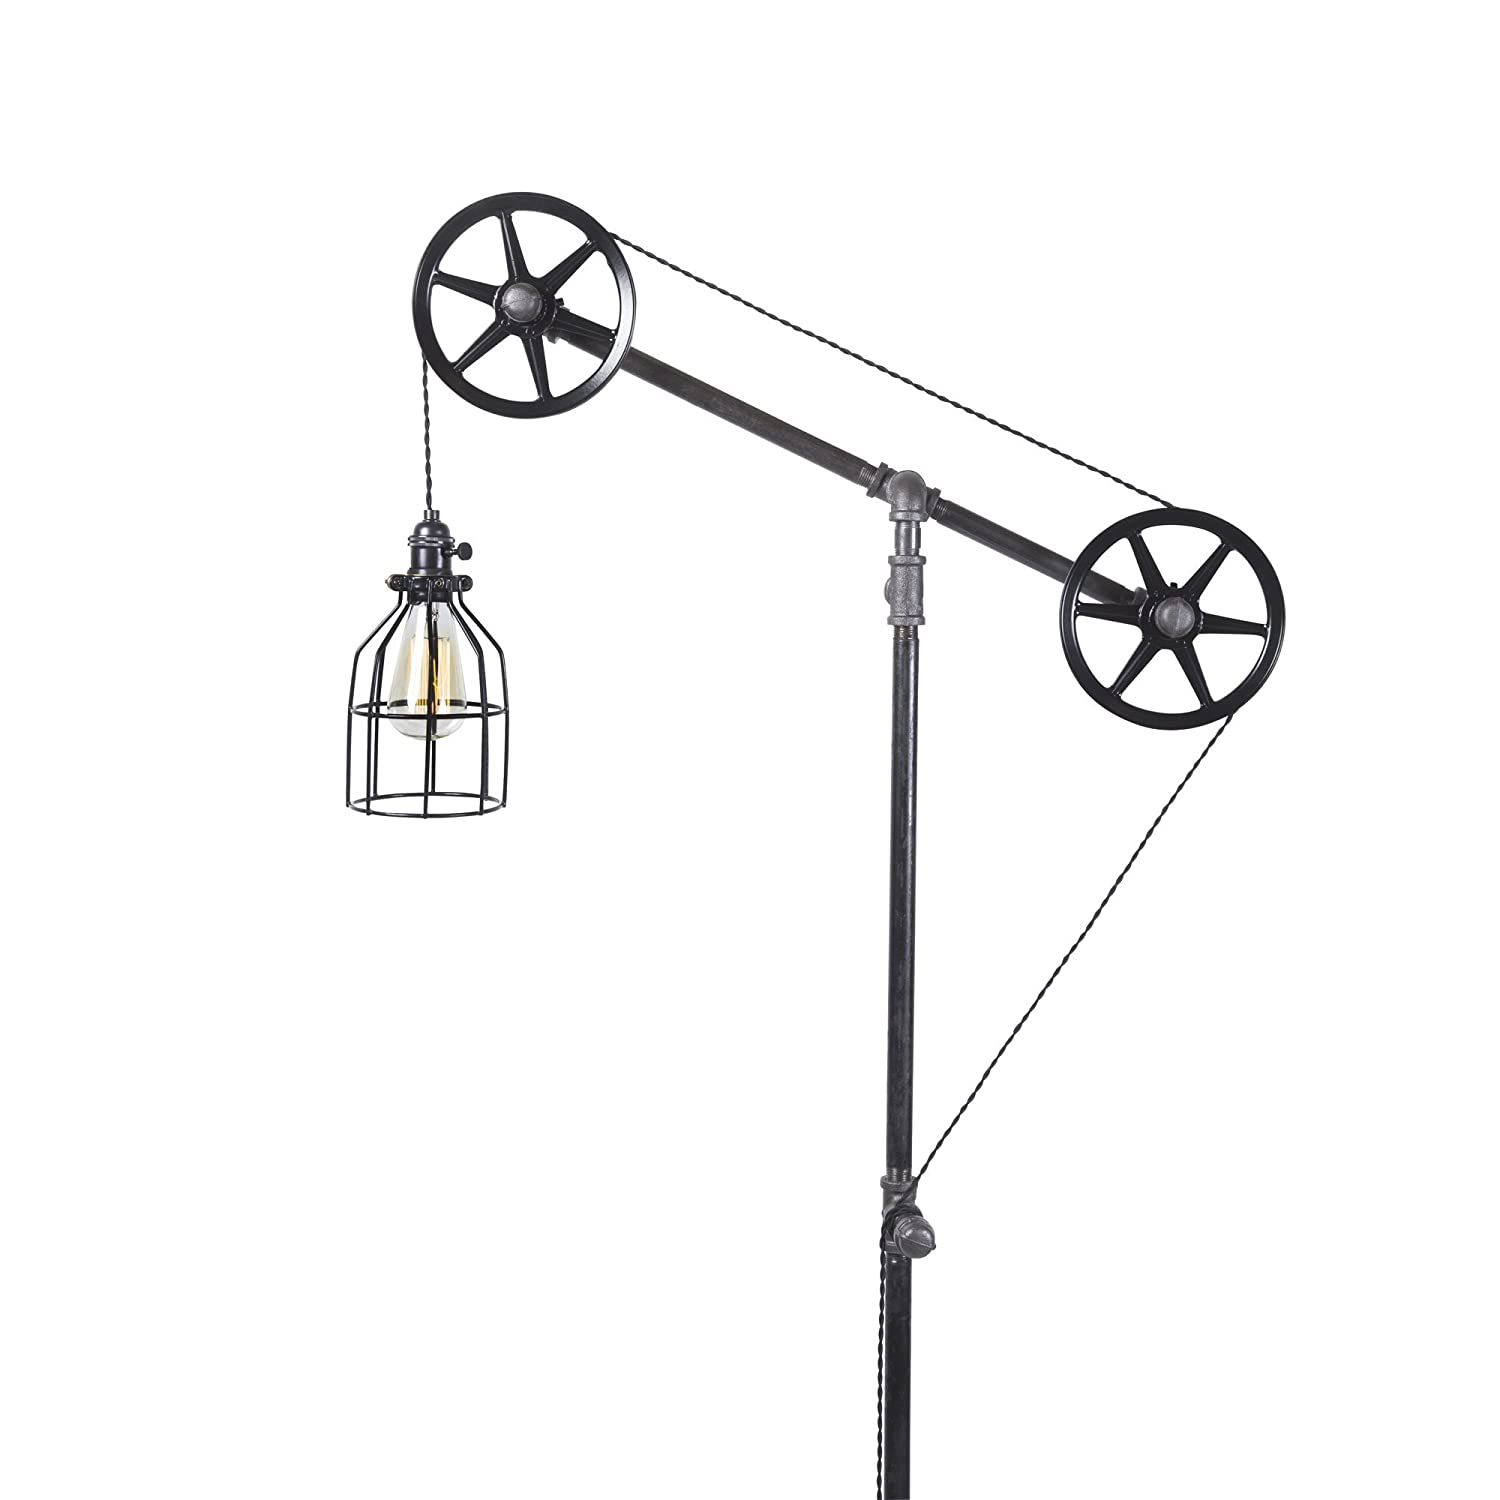 West ninth vintage black pendant industrial floor lamp with metal cage light amazon com